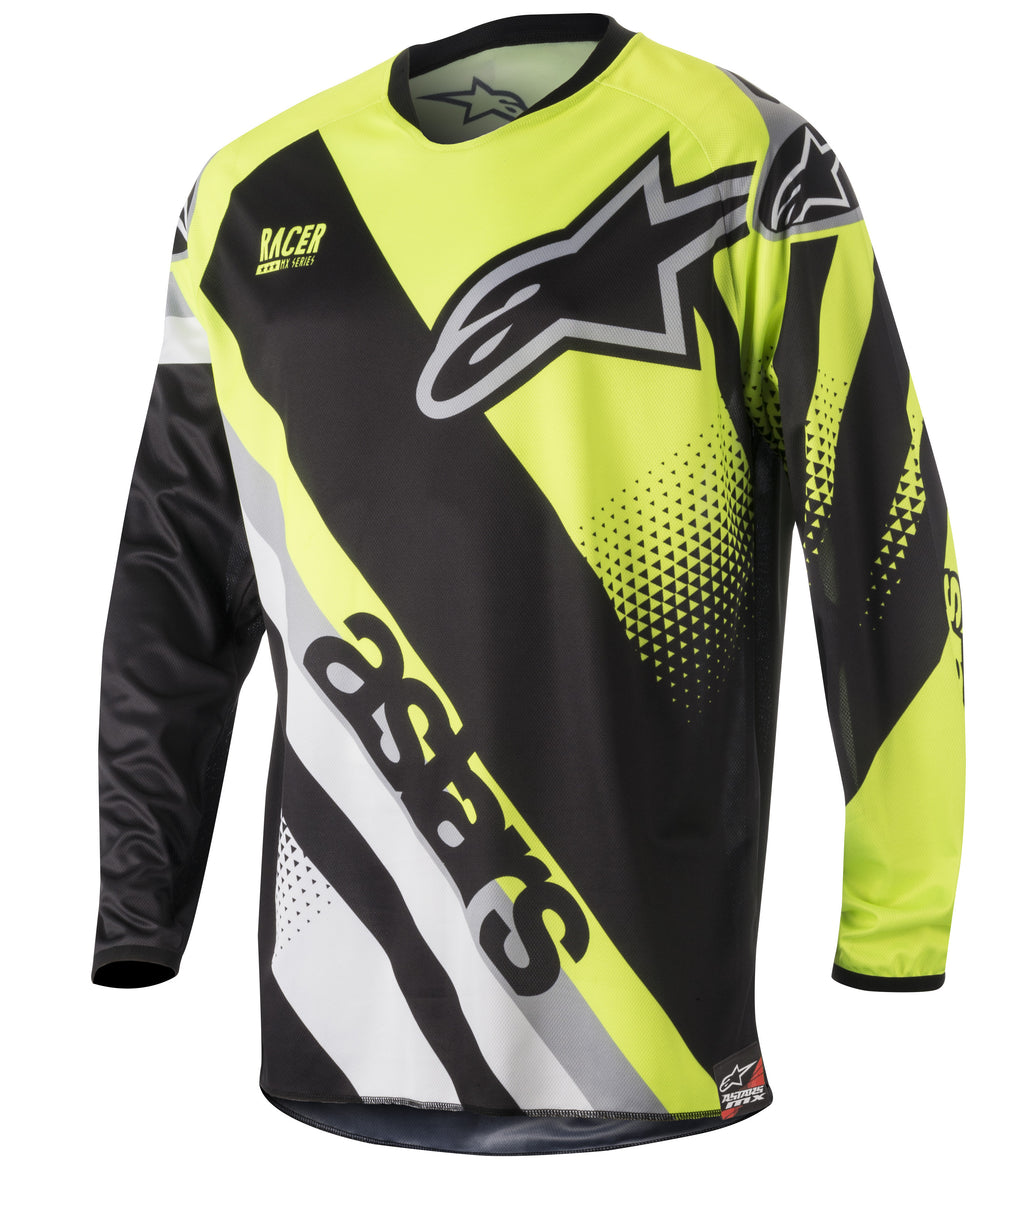 Kit Jersey Alpinestars Racer Supermatic - 2018- Black Flo Grey S - Small